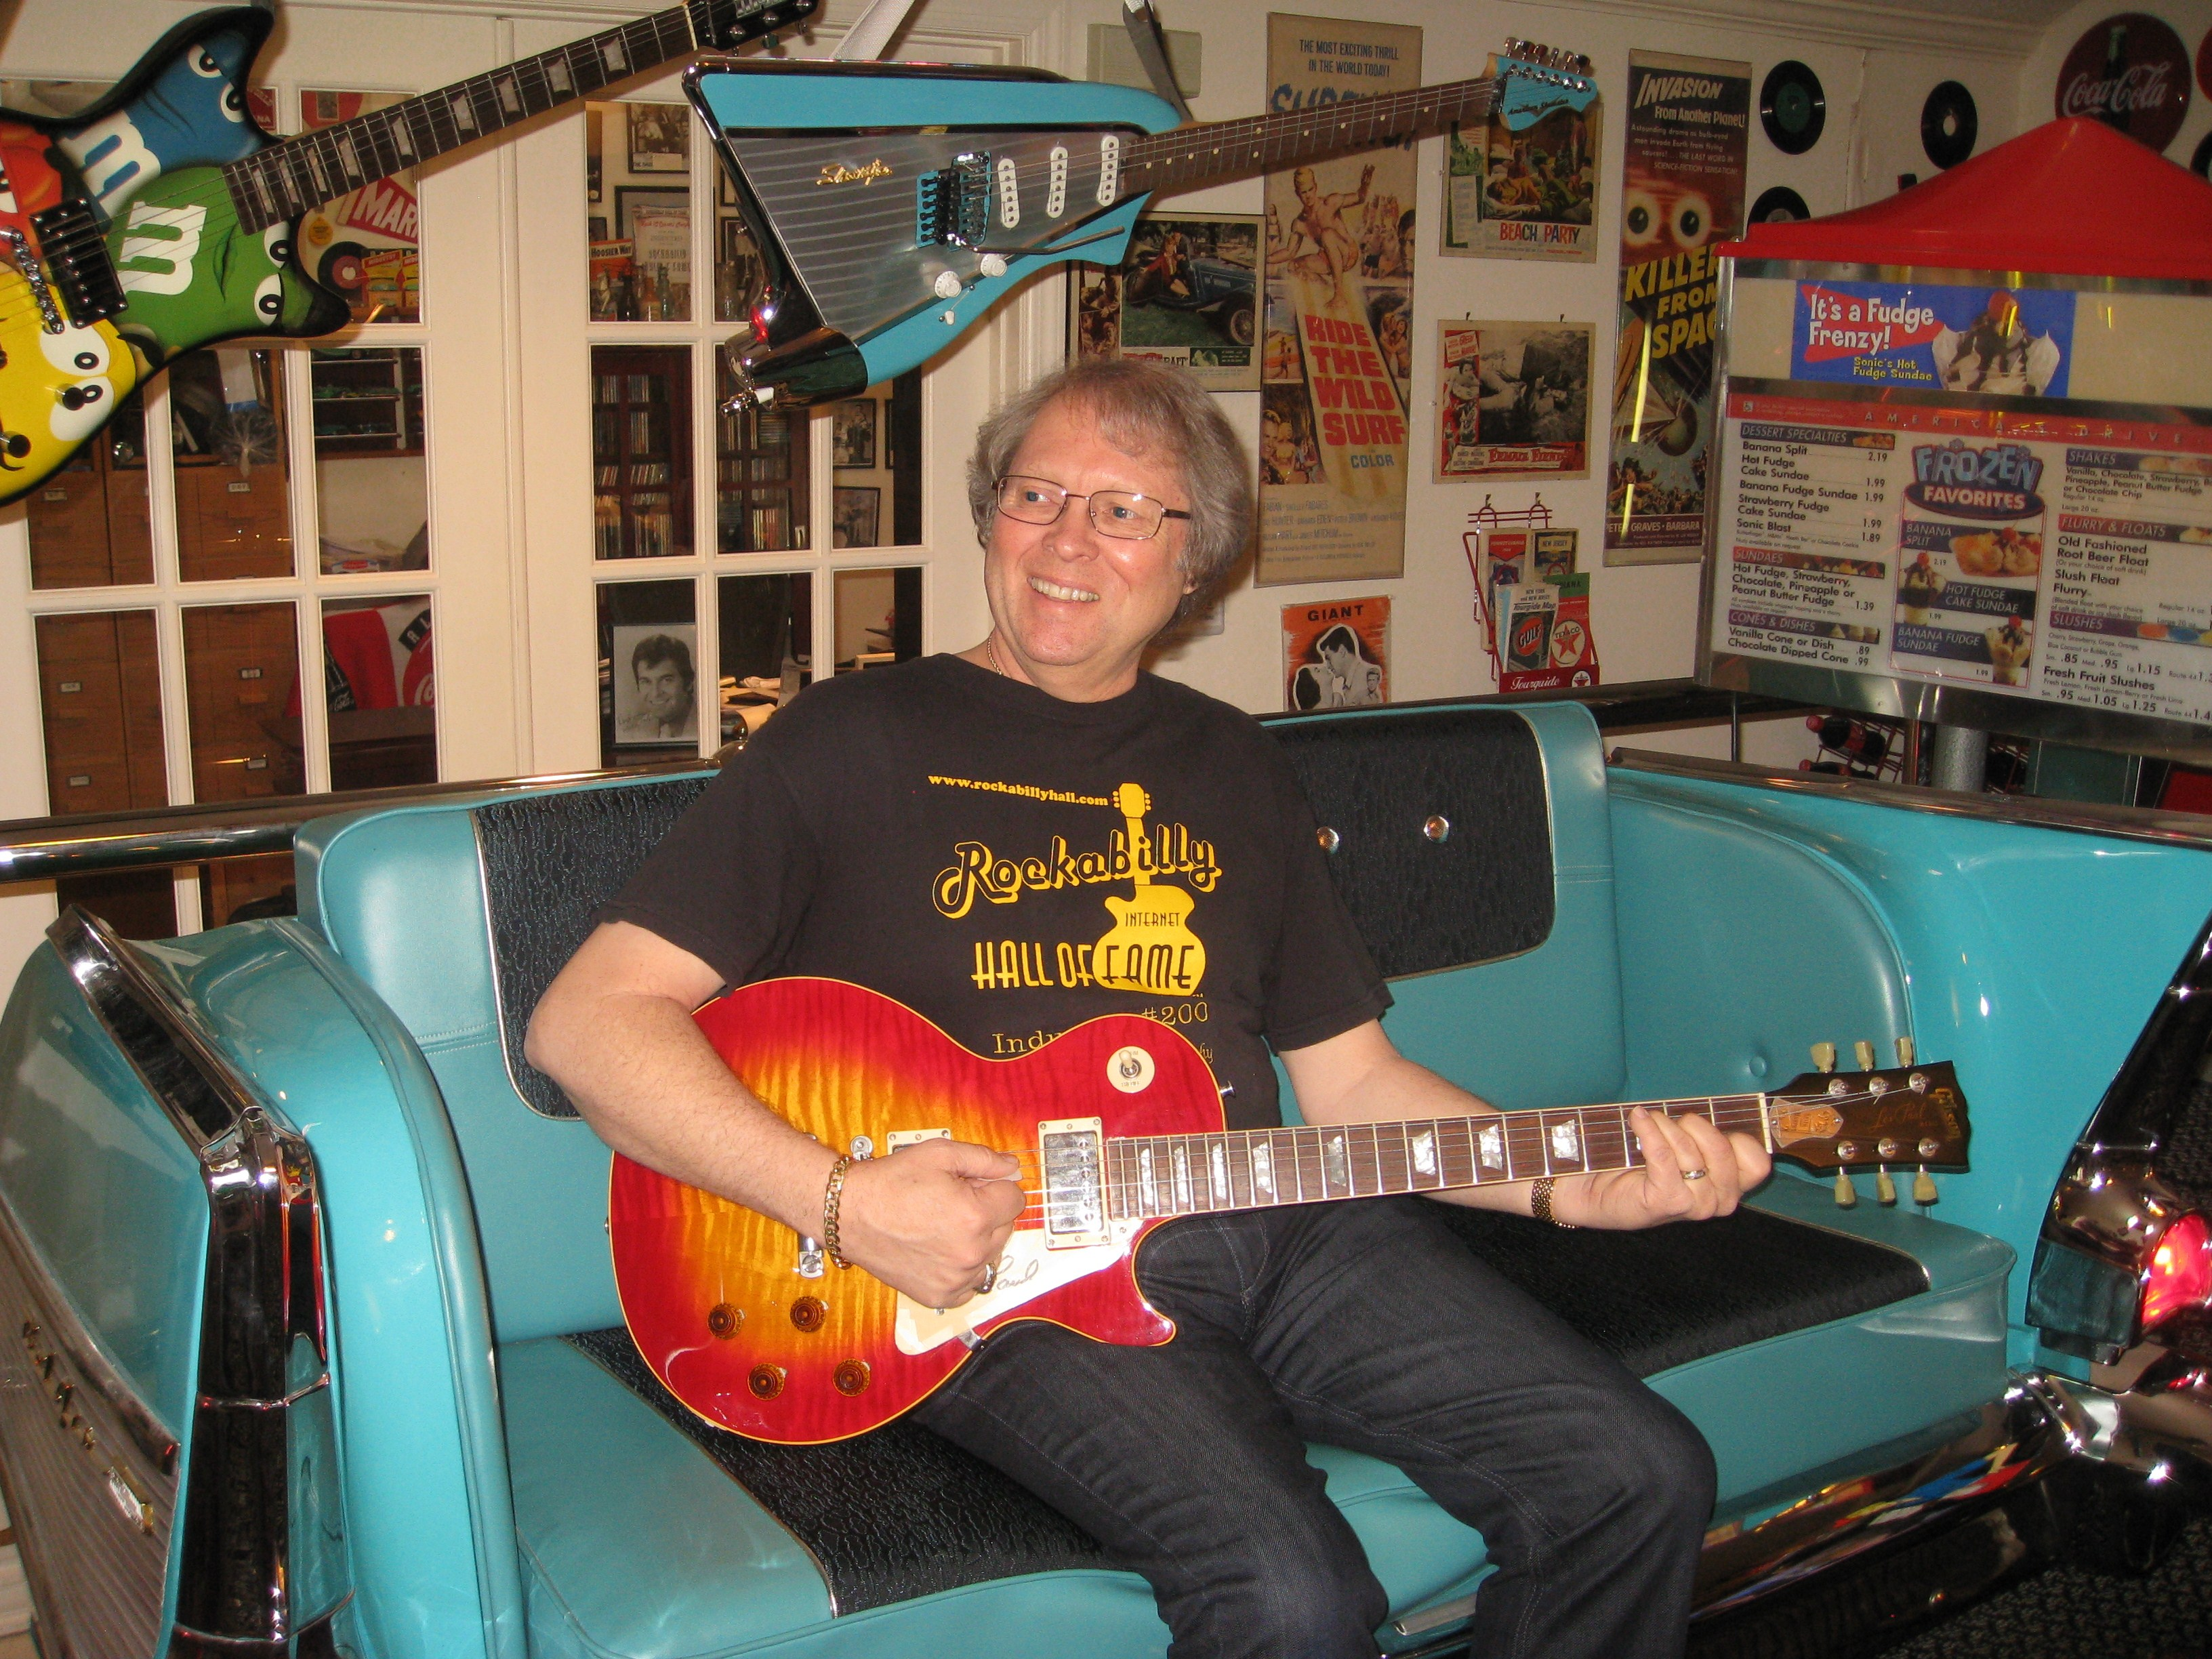 File:Keith on 57 chevy sofa Les Paul guitar 1835 5-1-2013.JPG ...